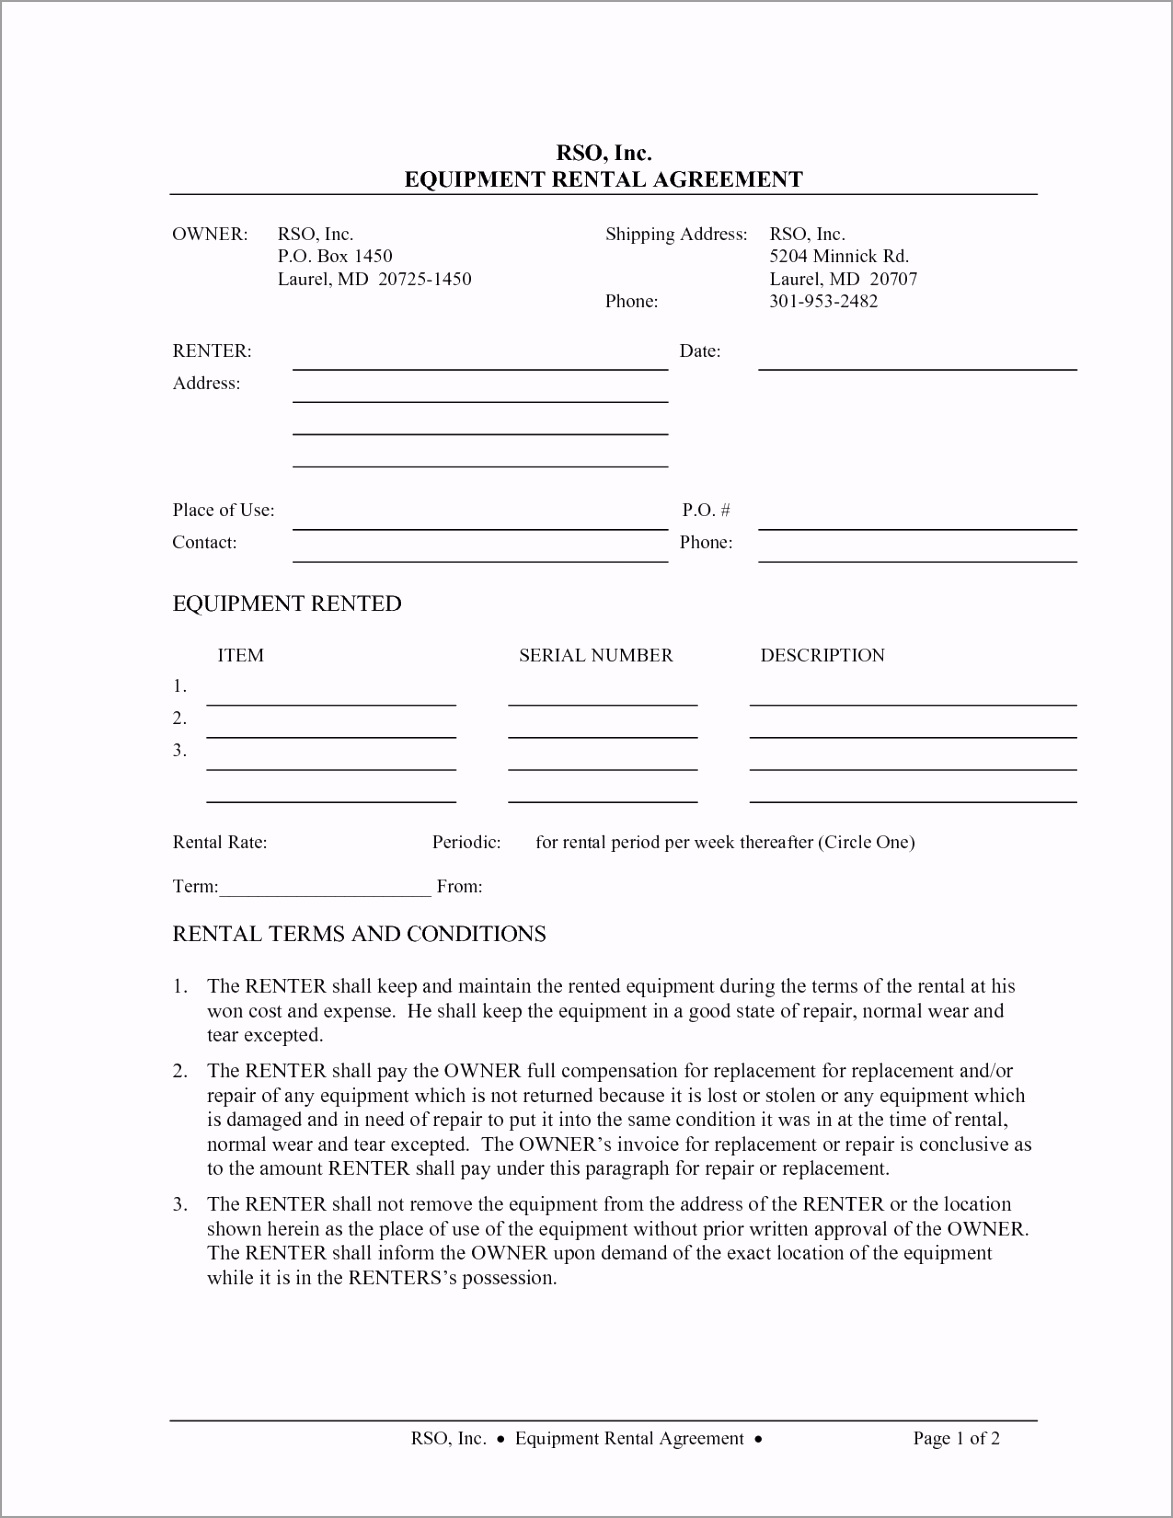 lease agreement application form 10 best of equipment rental agreement template free pprpt